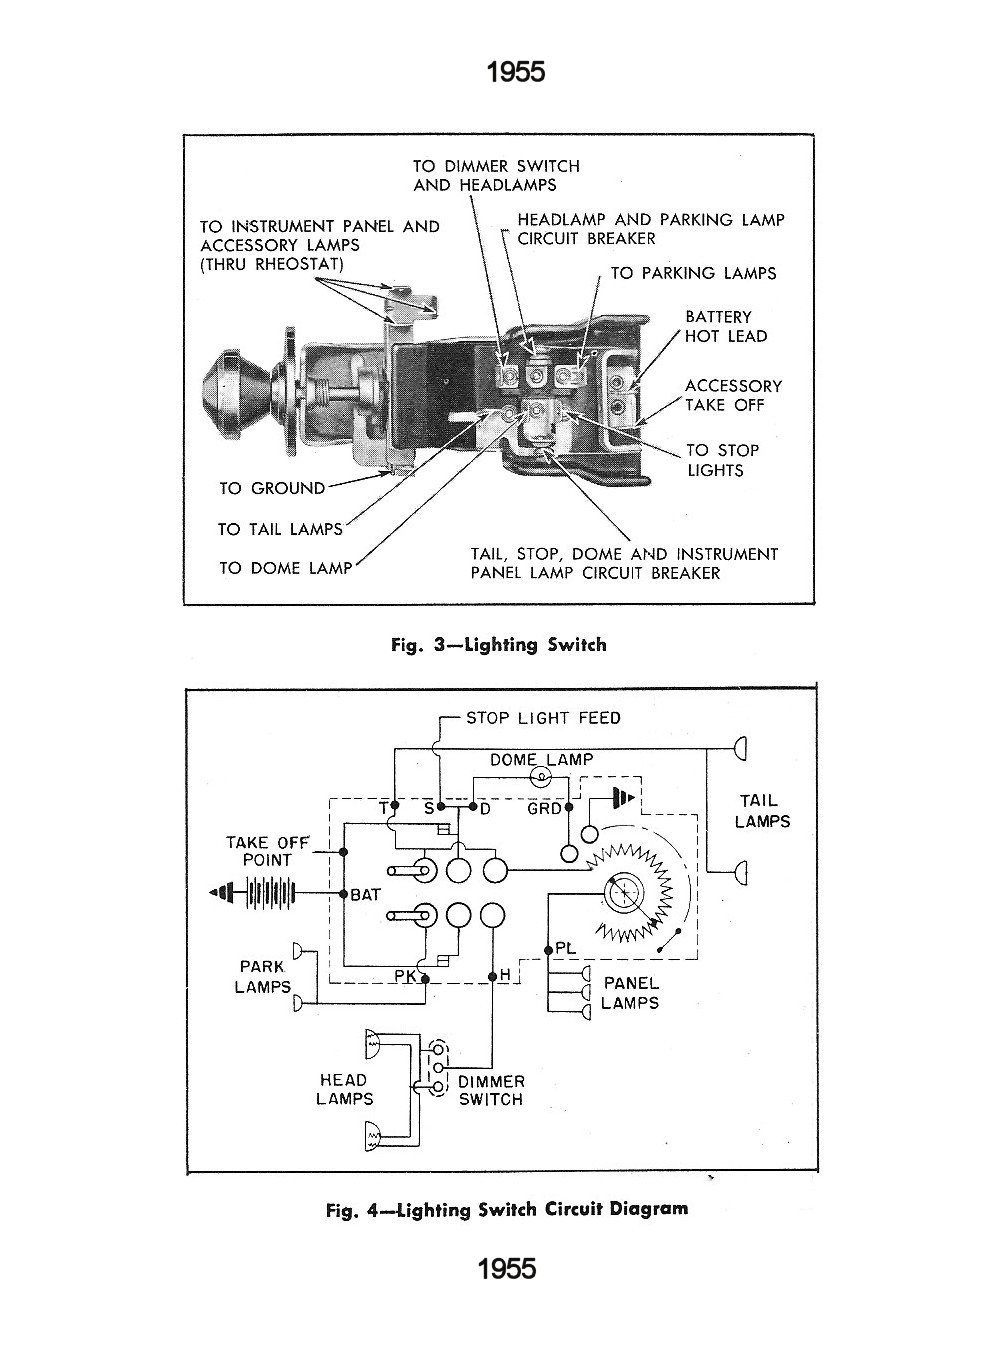 55csm1204a chevy wiring diagrams 66 Chevy Headlight Switch Wiring Diagram at bakdesigns.co